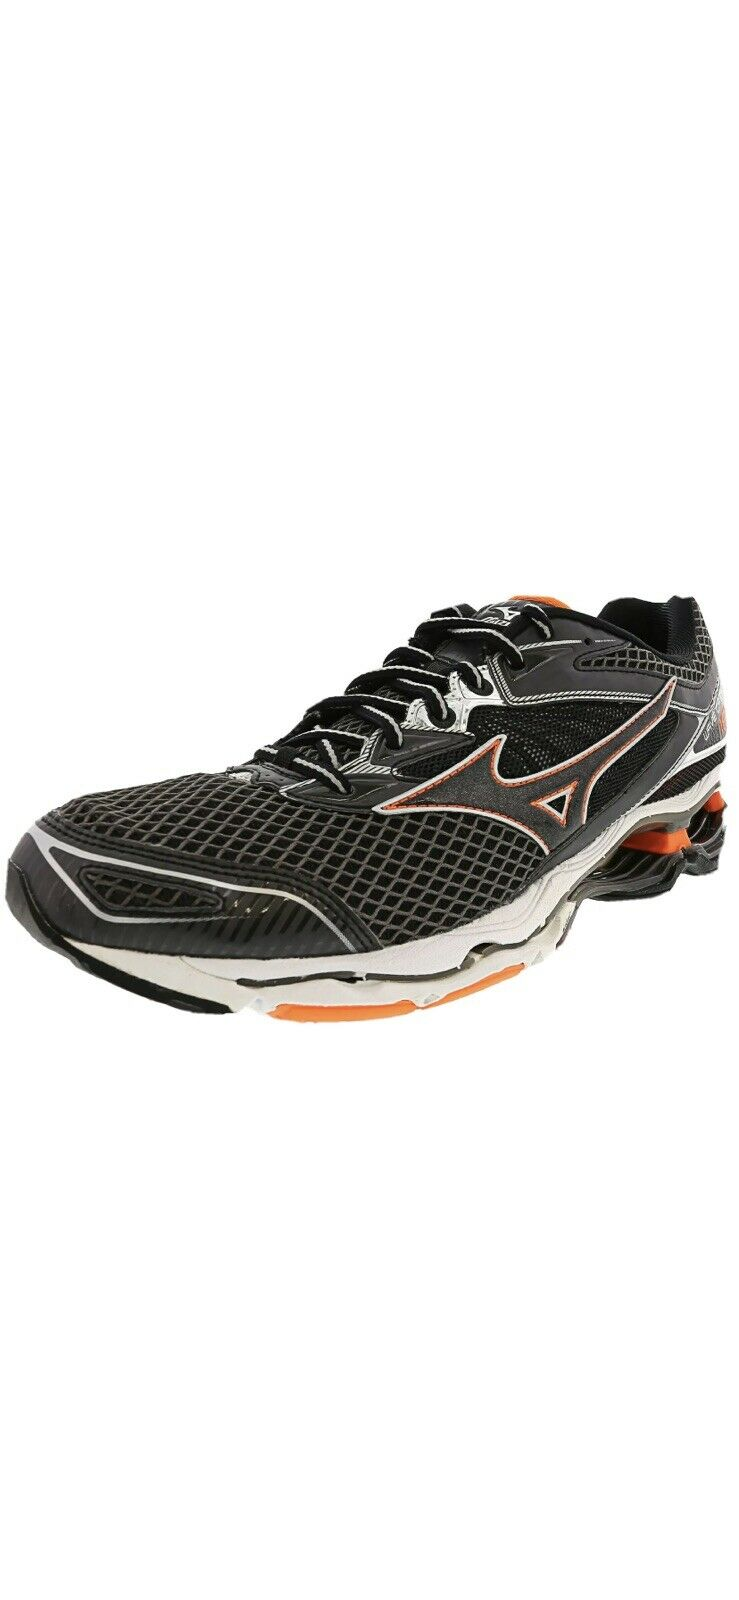 mens mizuno running shoes size 9.5 equivalent high mountain